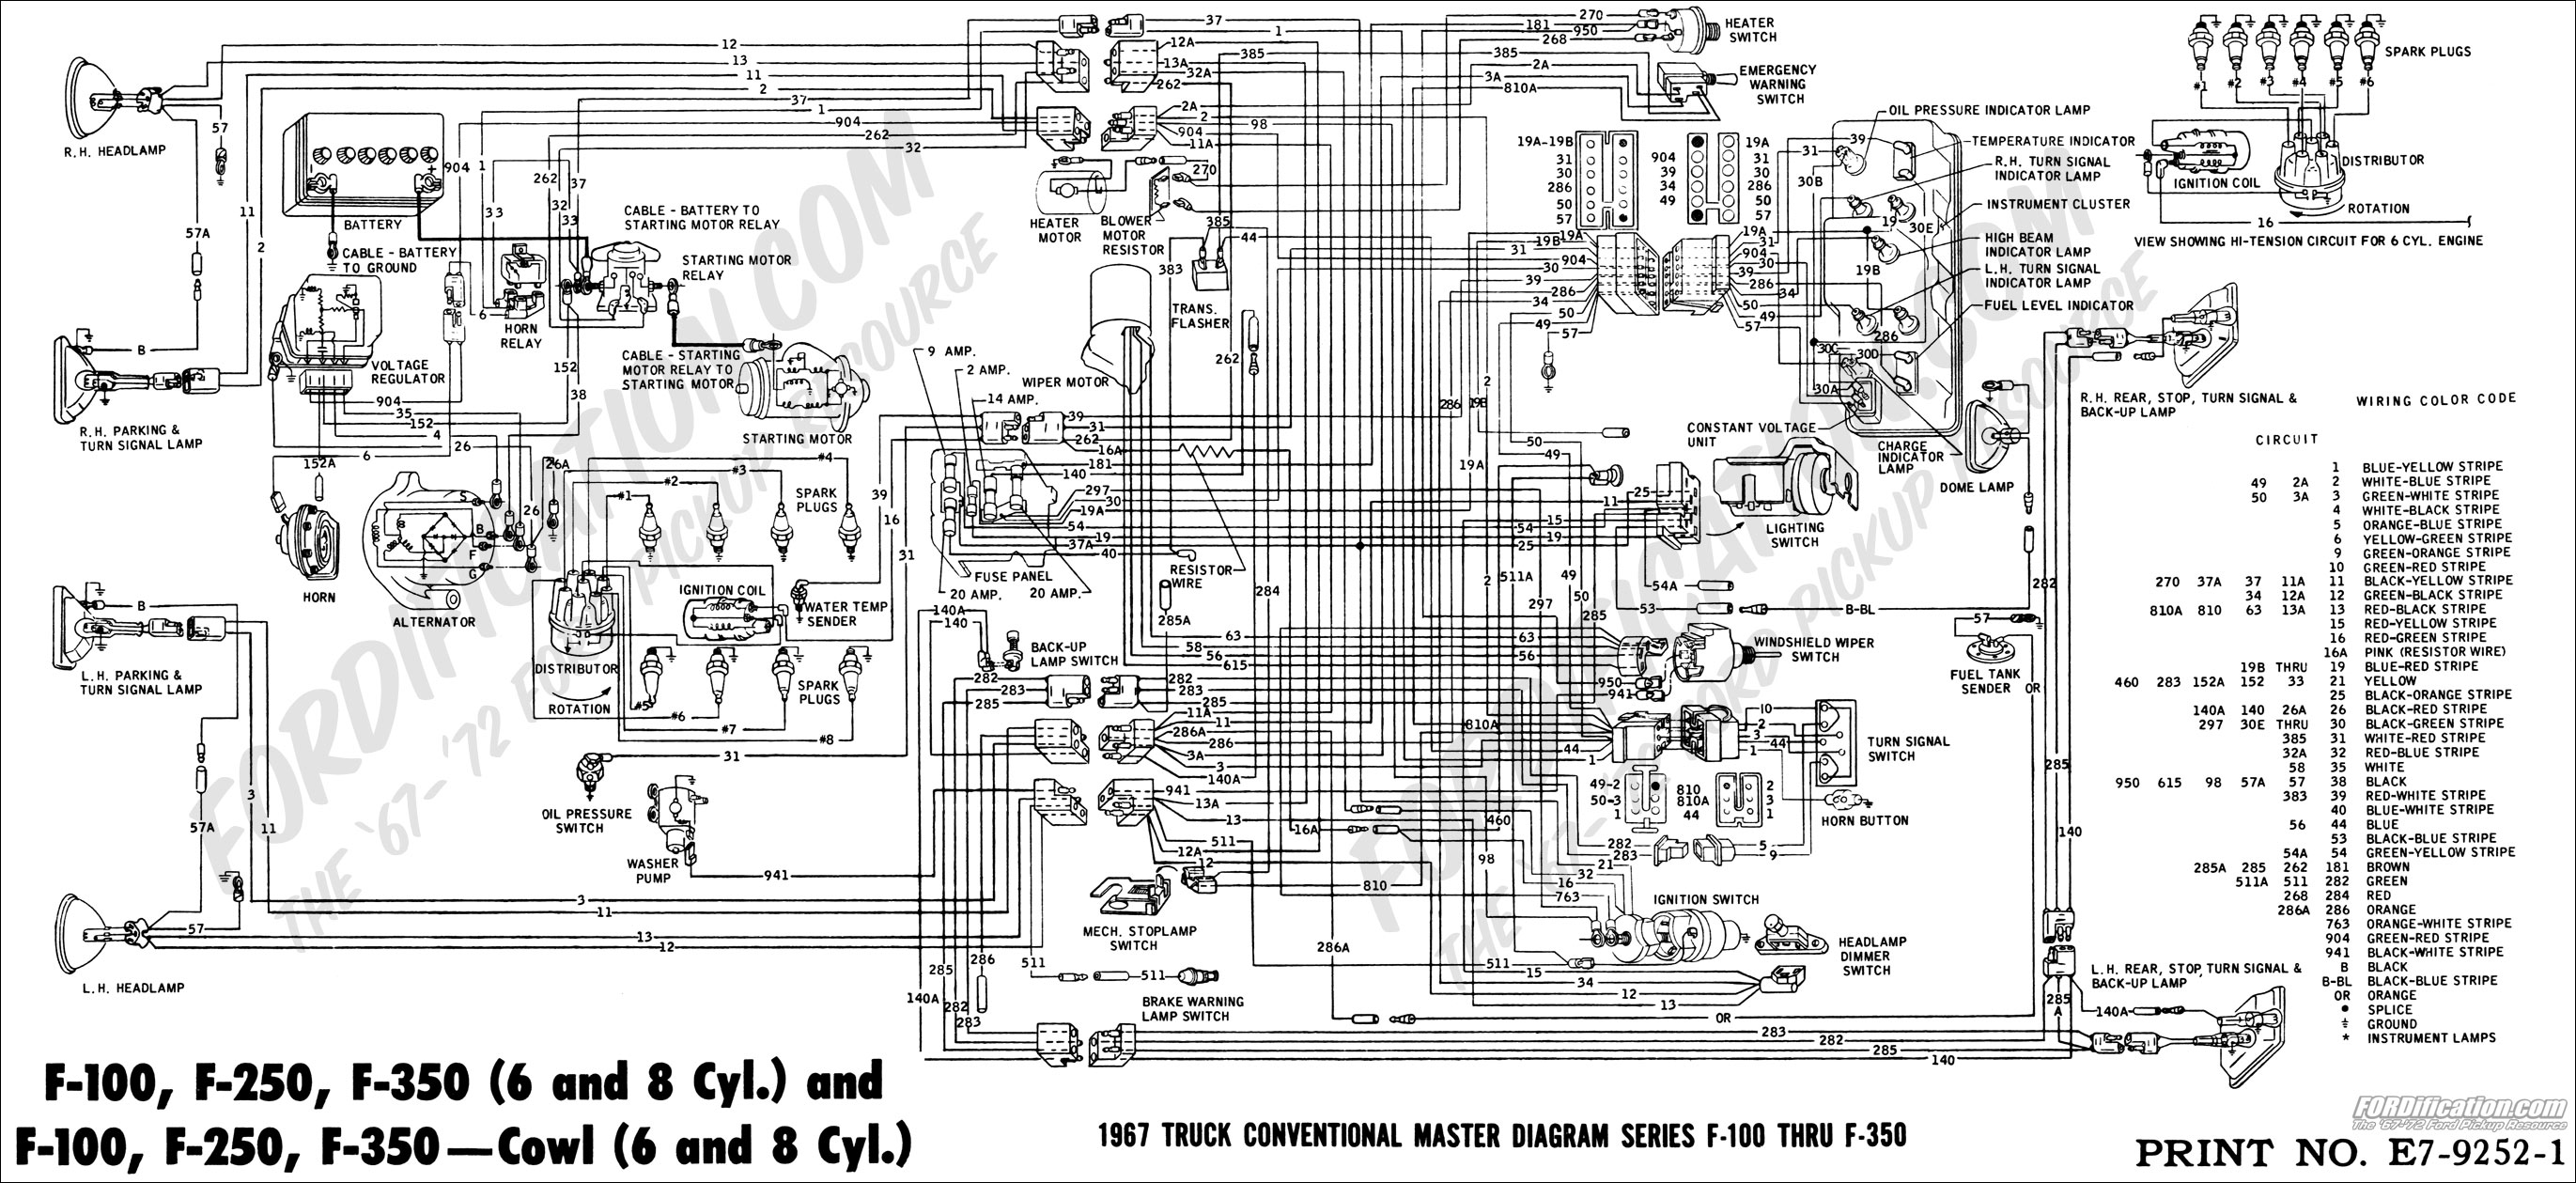 Ford F150 Wiring Diagrams Ford Inspiring Automotive Wiring Diagram